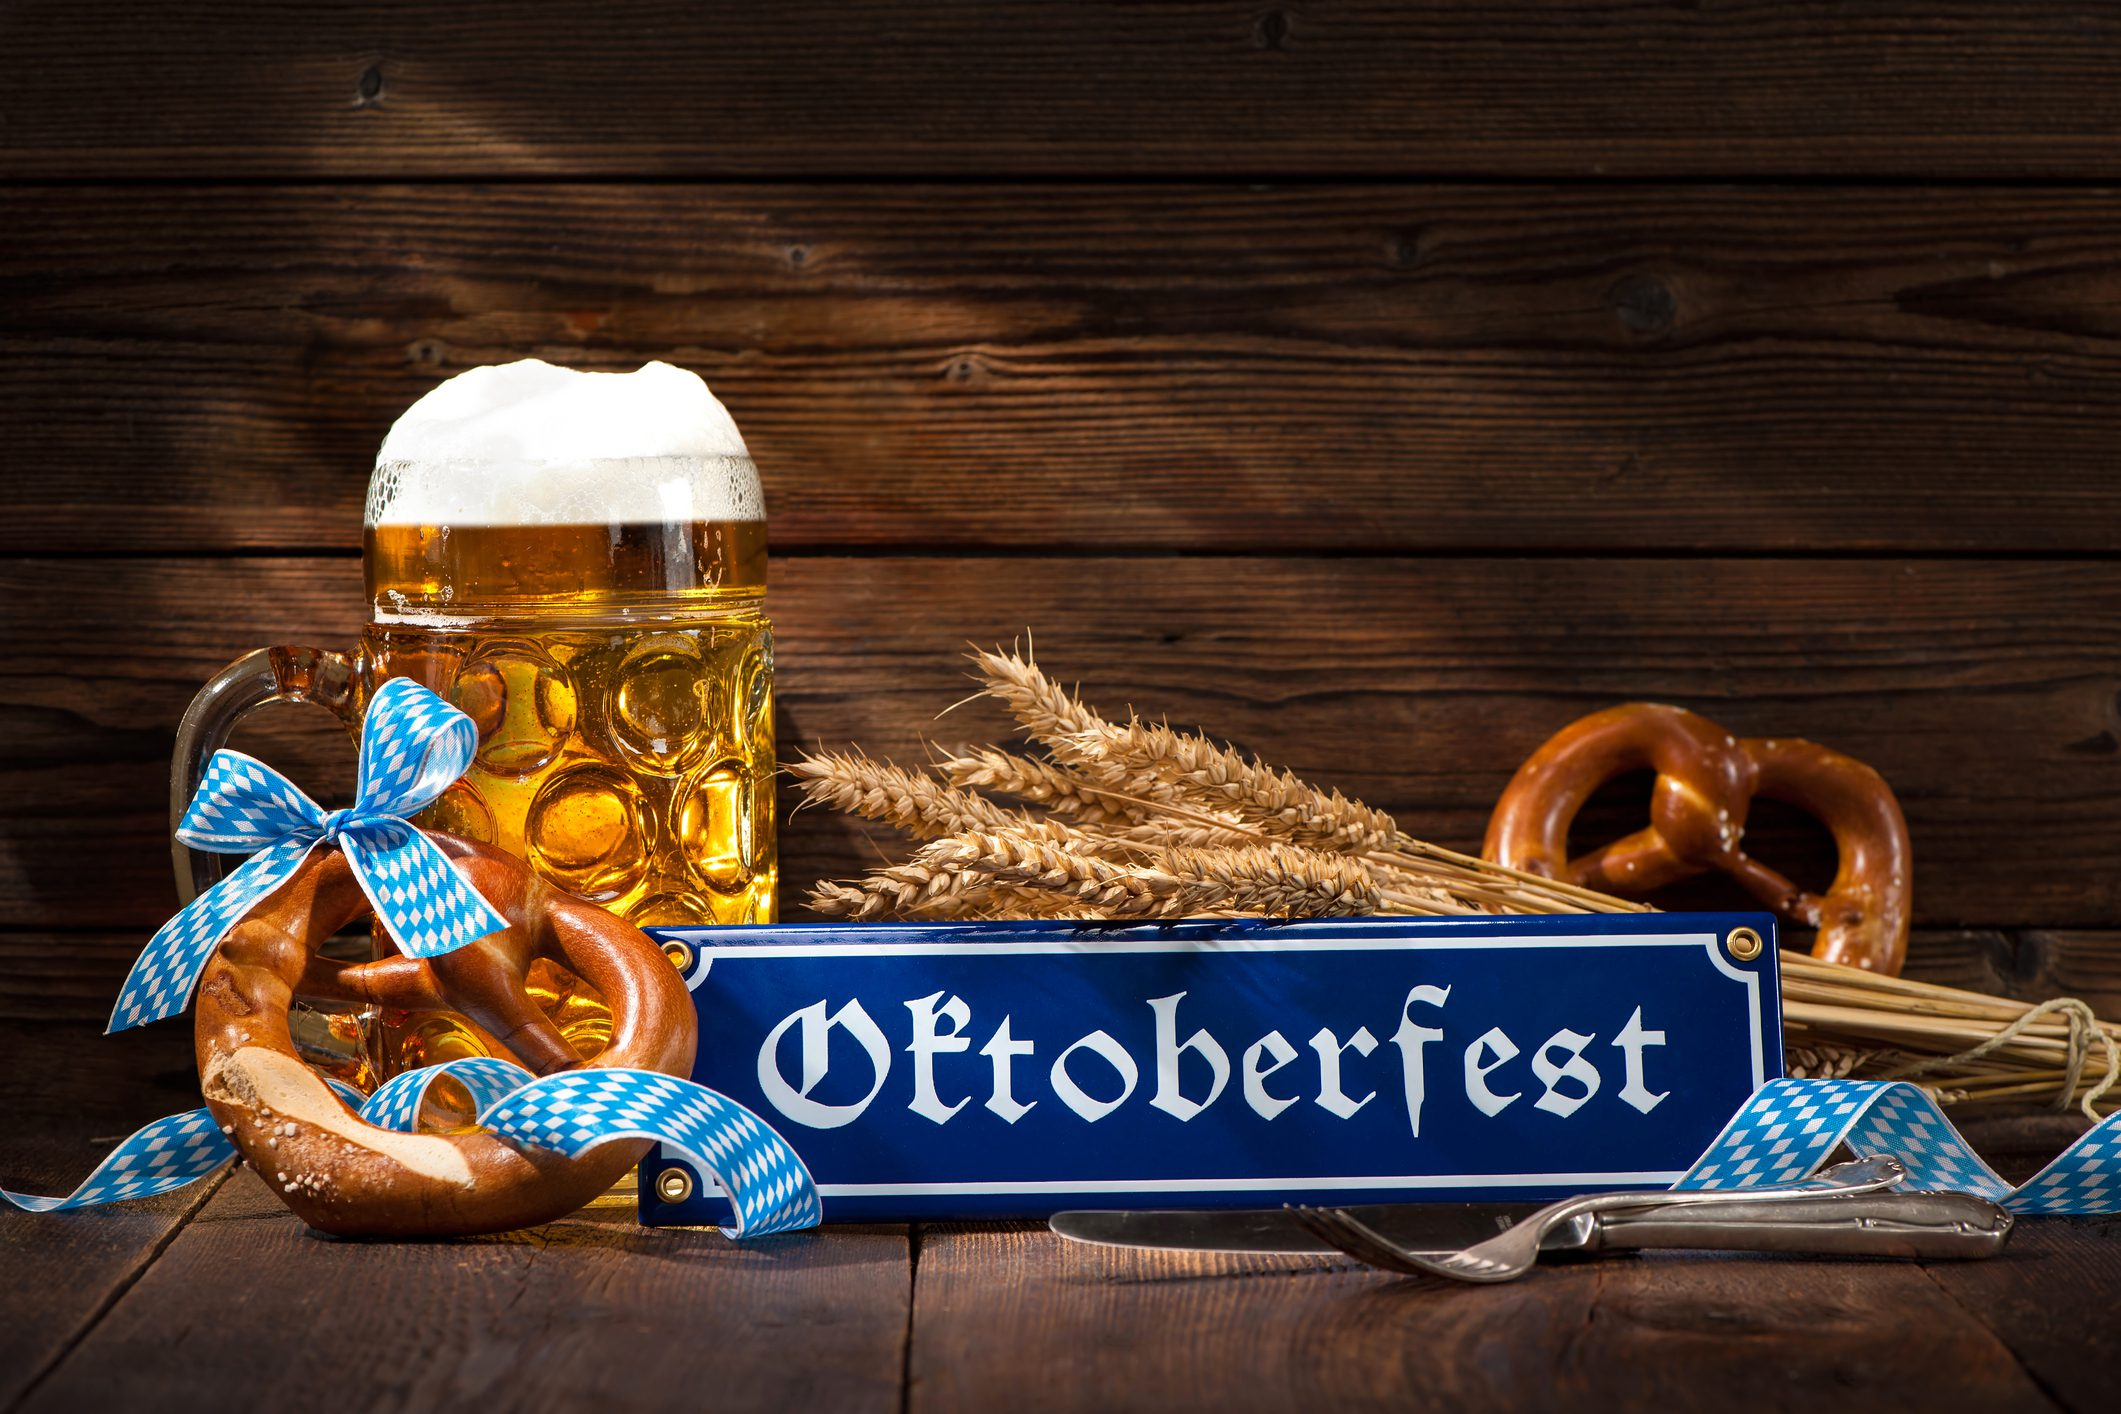 Original bavarian pretzels with beer stein